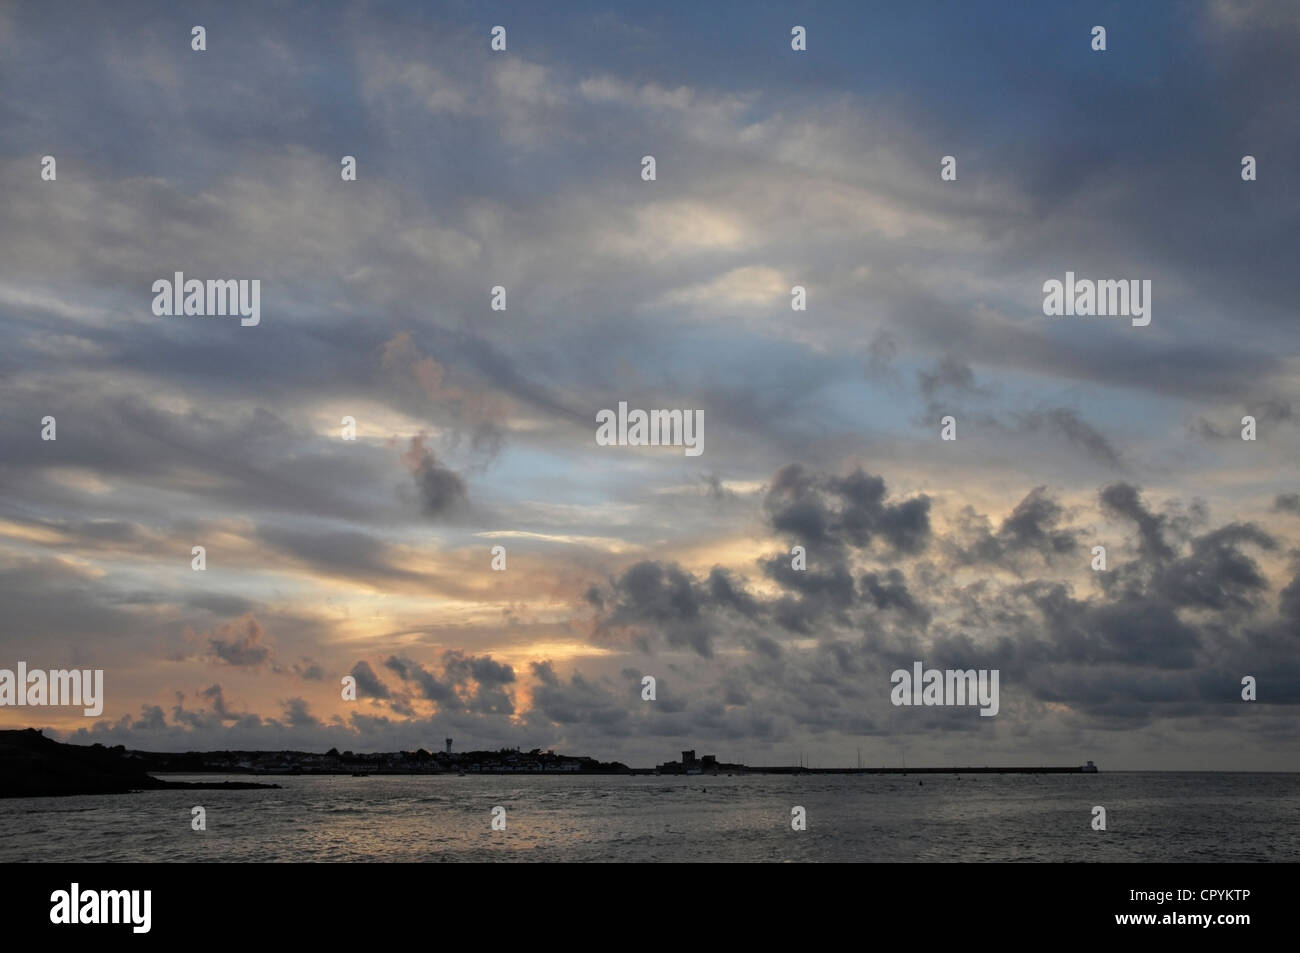 Sunset with a Cloudy Sky above the Sea - Stock Image